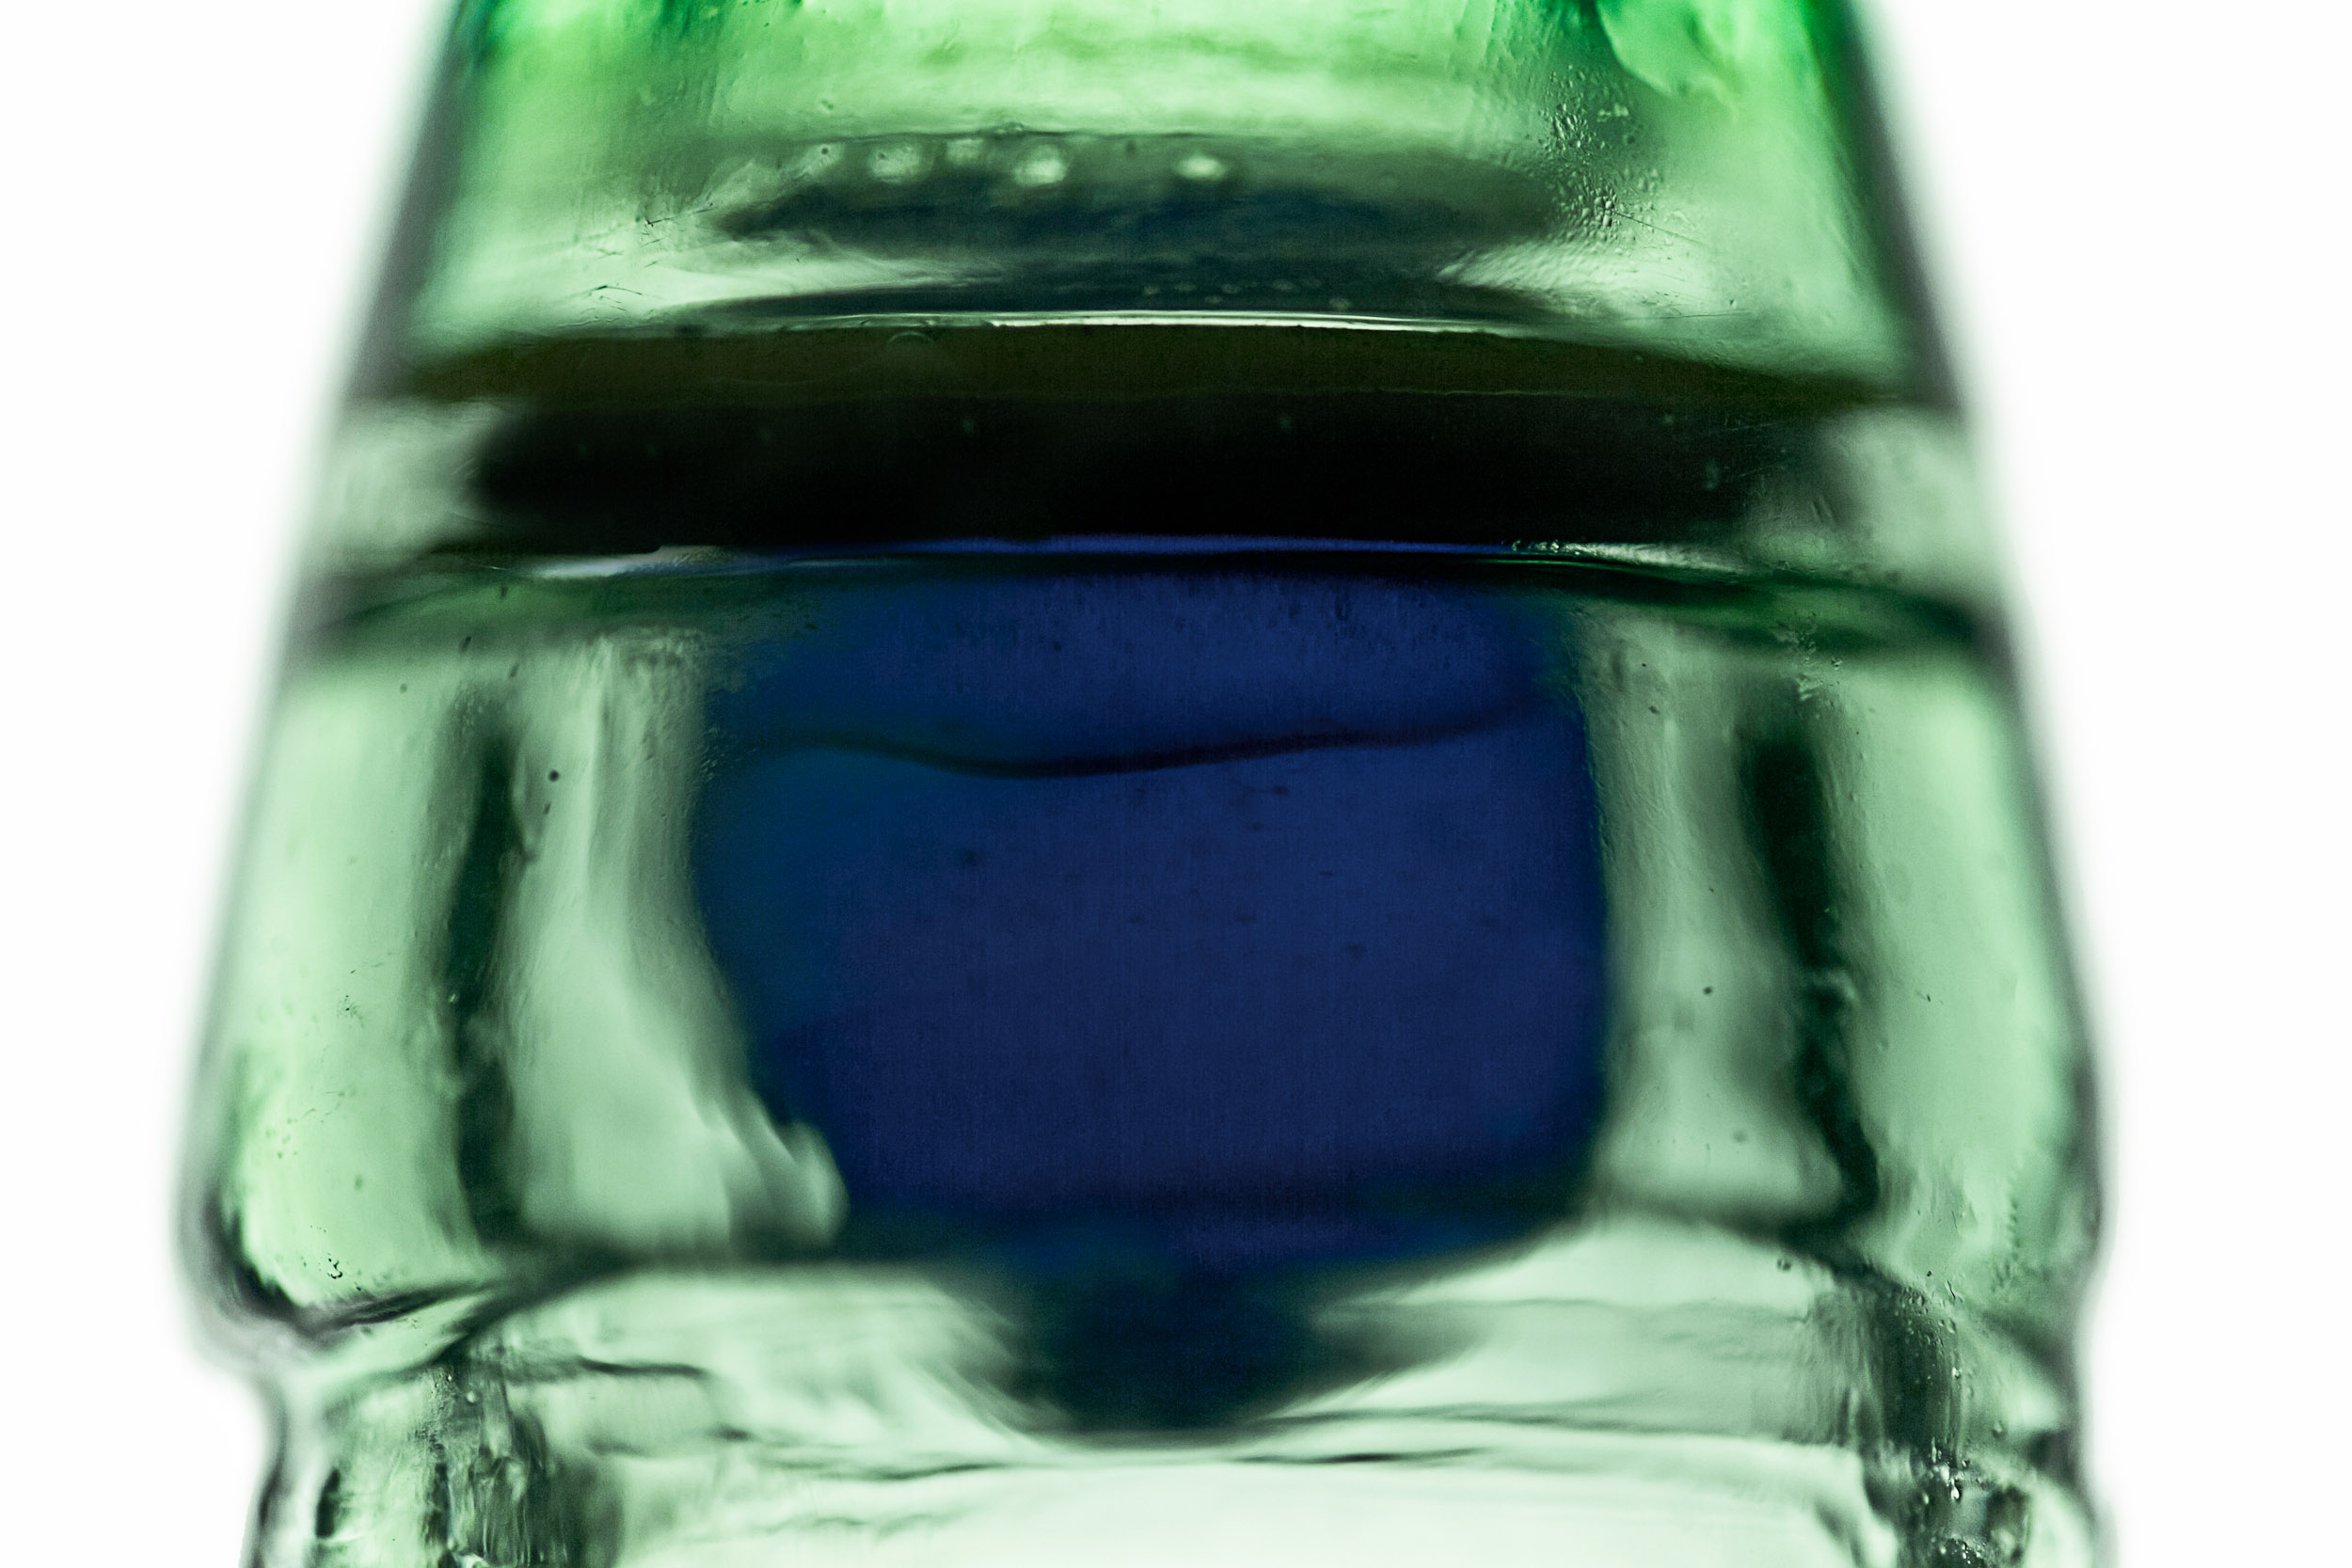 Sindhur_Photography_Perspectives_Product_Golisoda_Soda_16.JPG